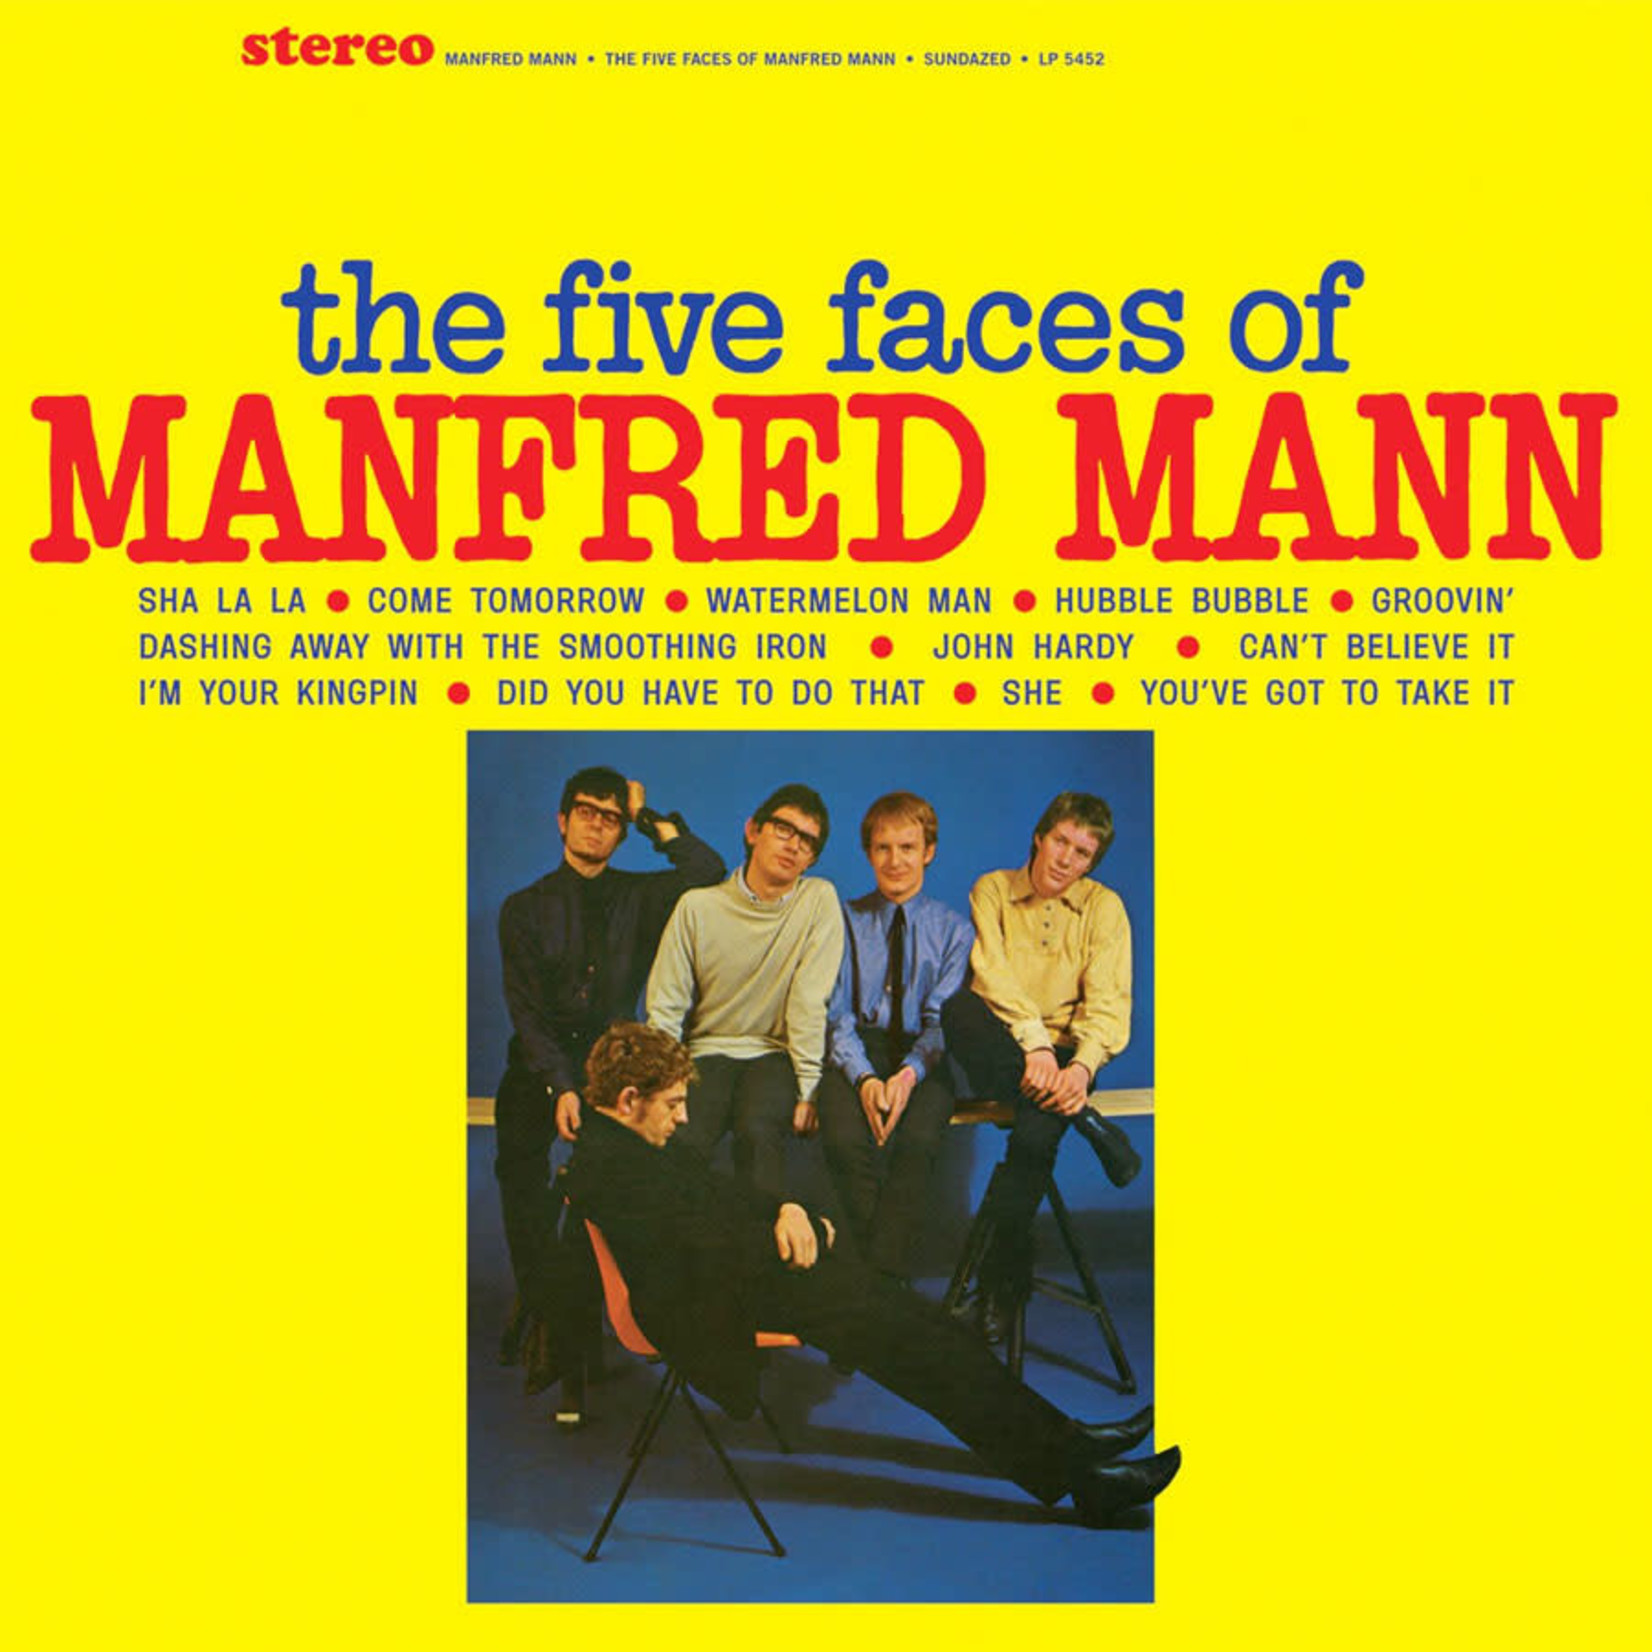 Vinyl Manfred Mann - The Five Faces of Manfred Mann.  Final Sale